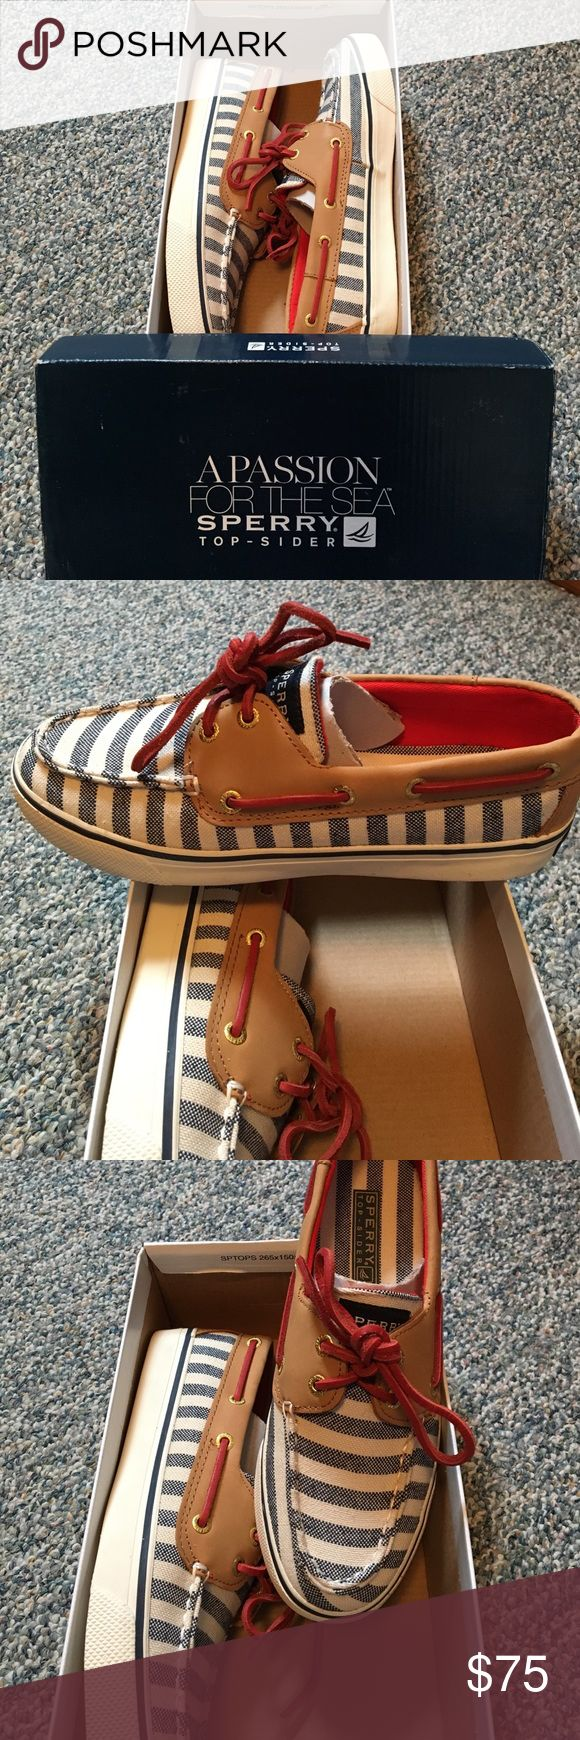 Sperry Women's Top-Sider Adorable Brand New in Box Sperry Bahama Navy Breton/Cognac Boat Shoe. These are perfect for the Summer and can be worn with anything. Very comfortable and Nautical looking⚓️ Sperry Top-Sider Shoes